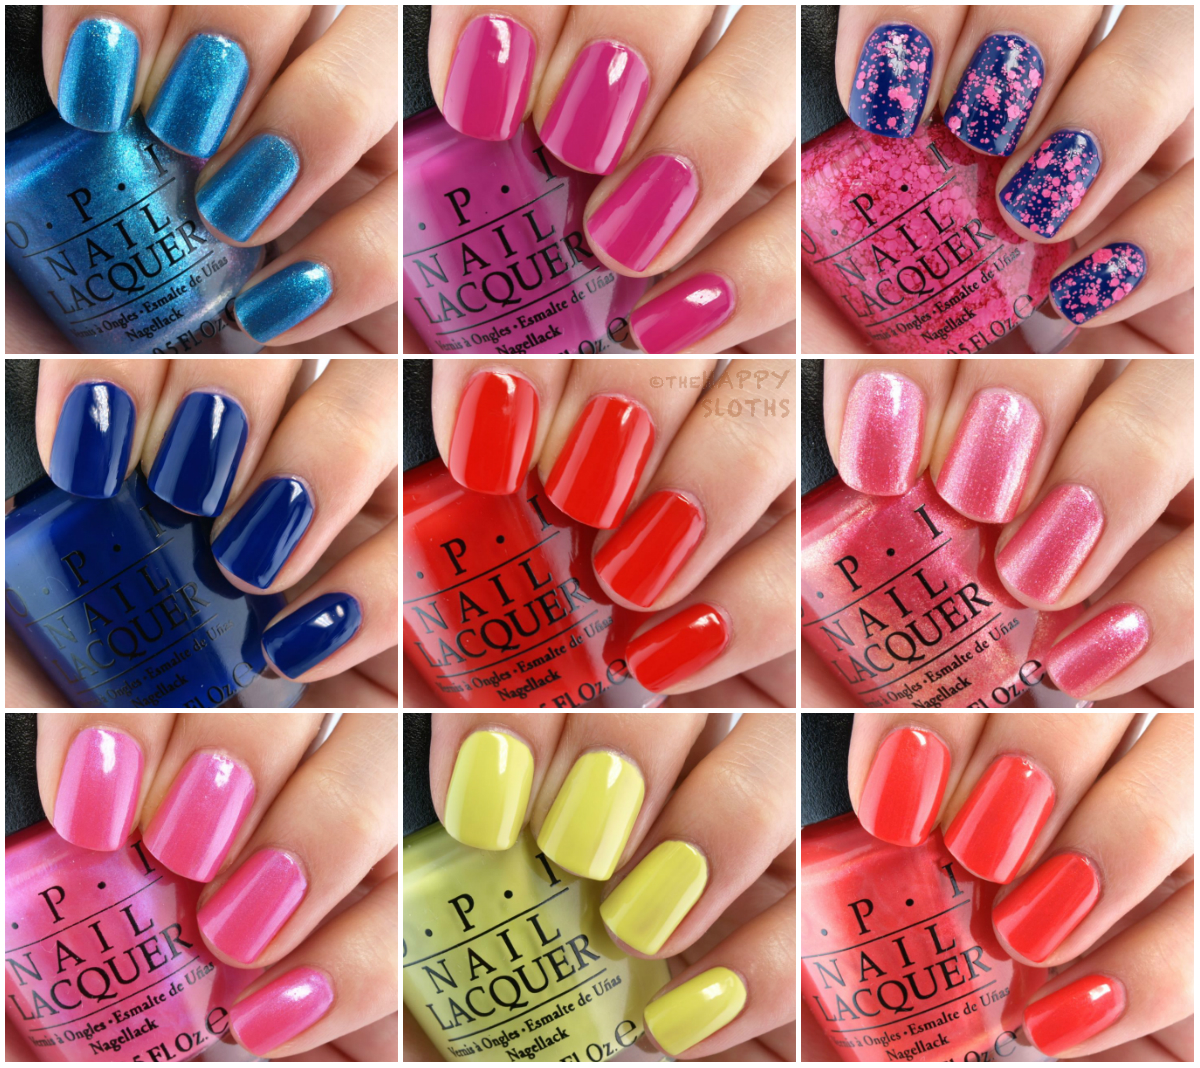 OPI Brights 2015 Summer Collection: Review and Swatches